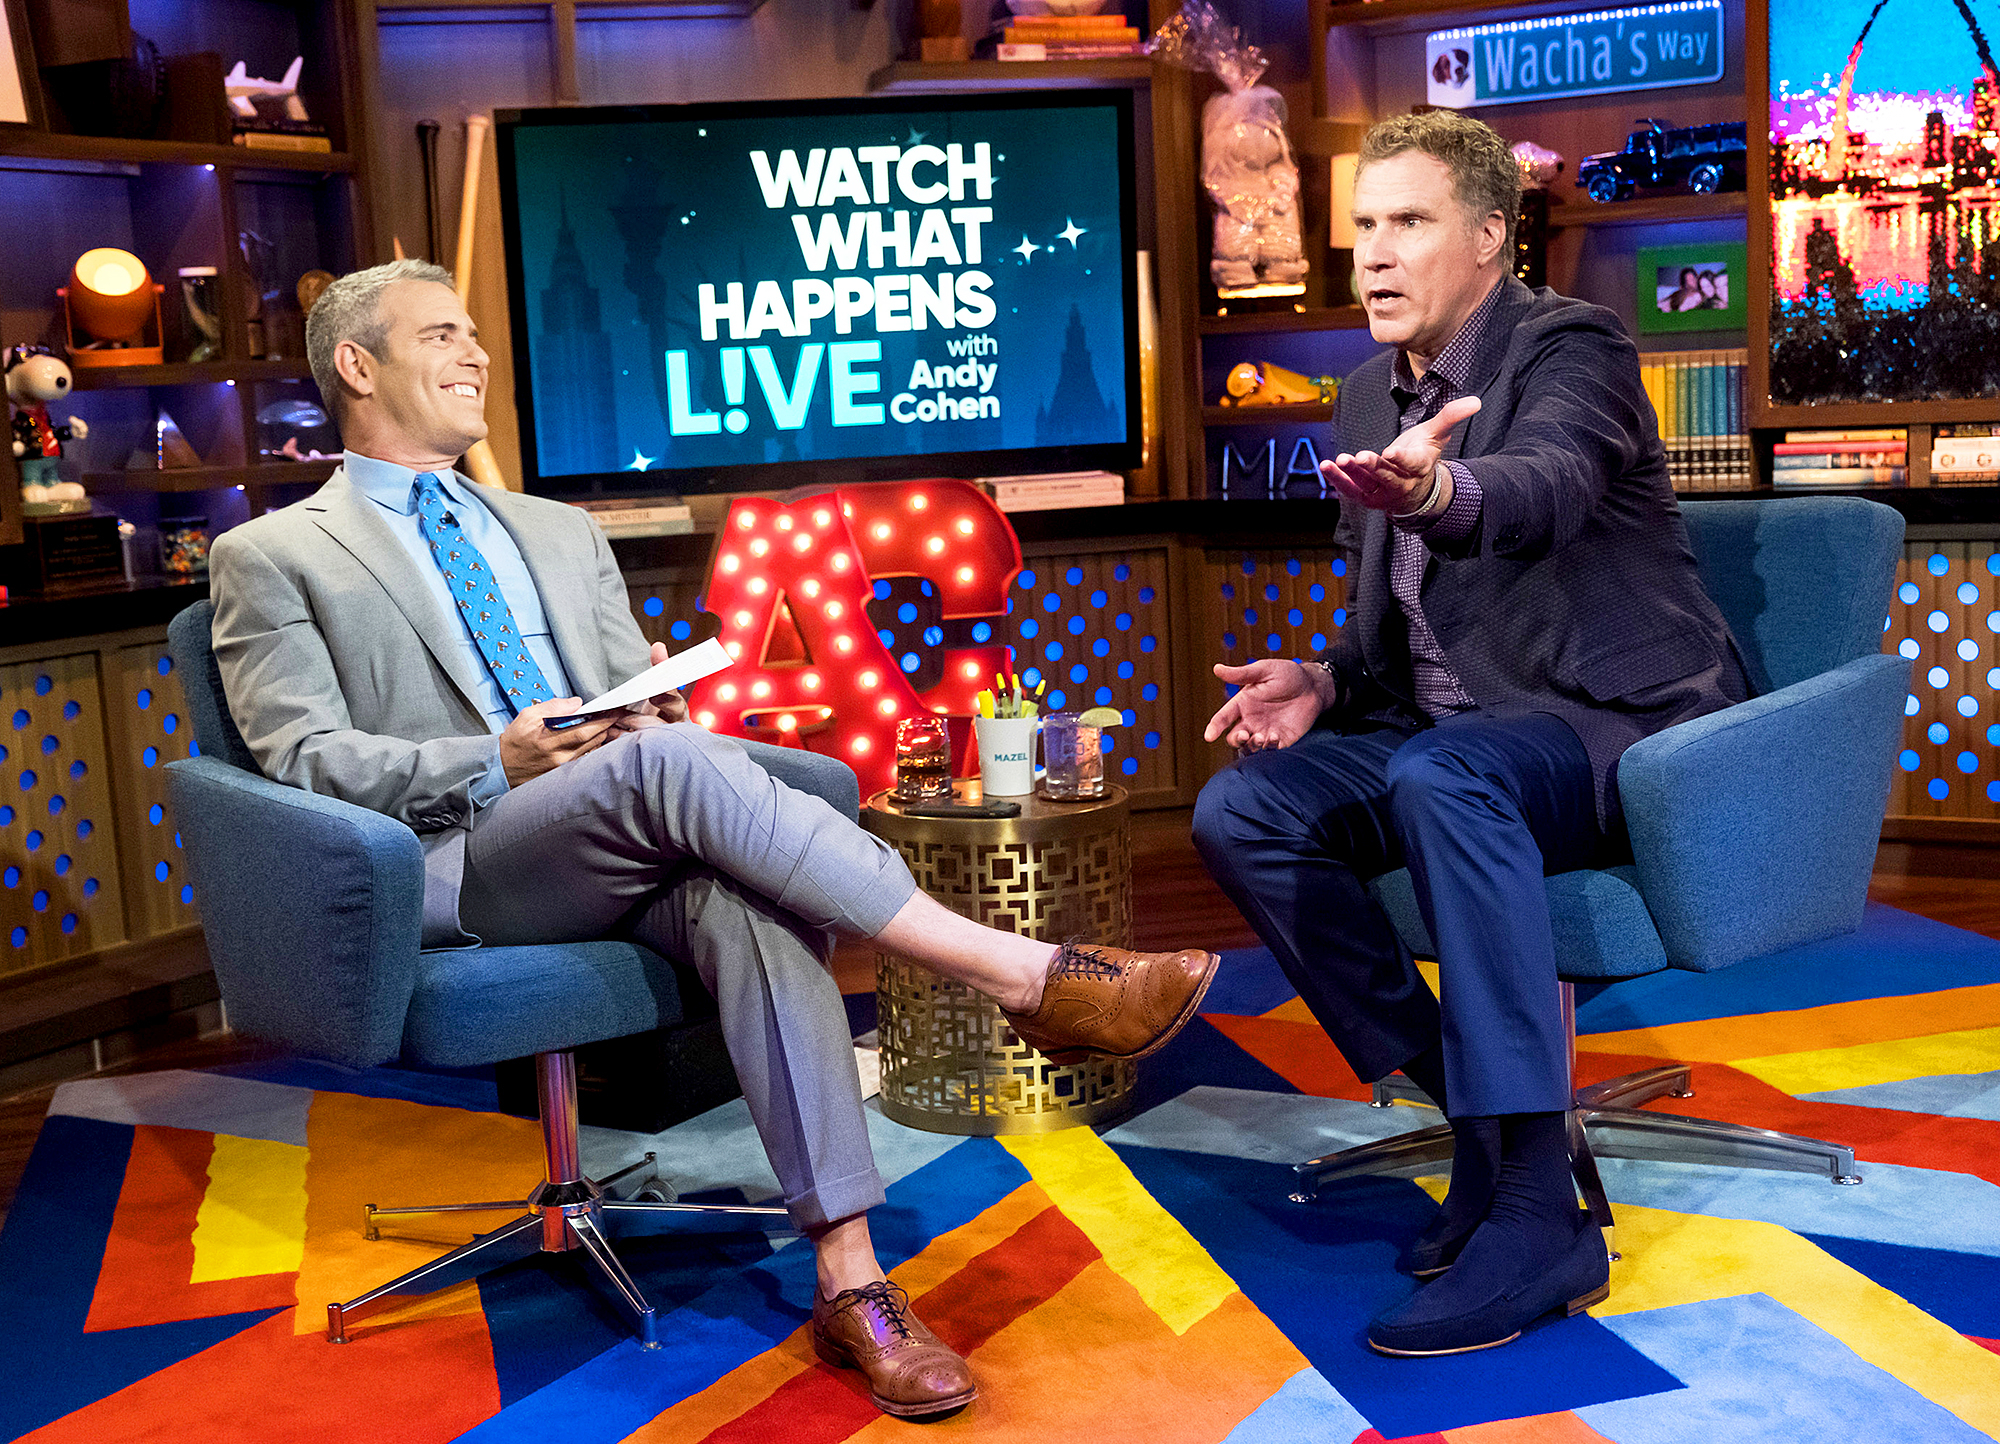 Will Ferrell and Andy Cohen Watch What Happens Live